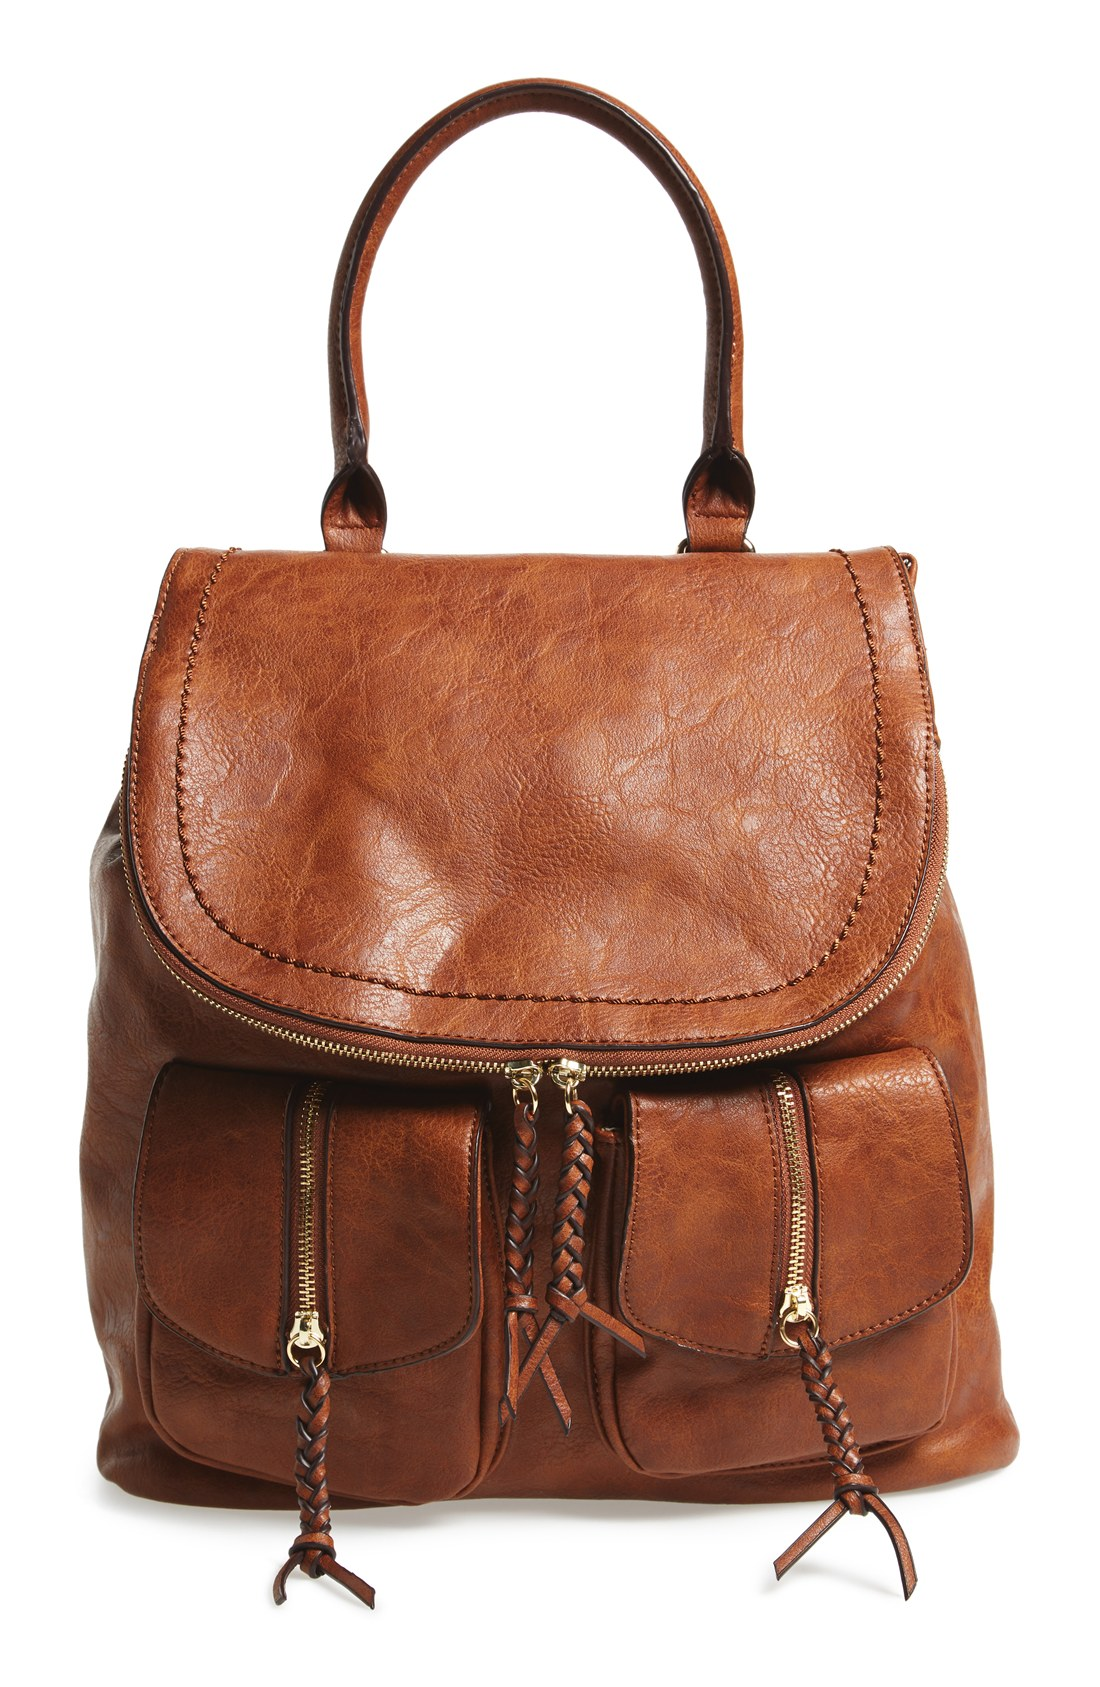 Leather Backpacks For Women 81gW78XN